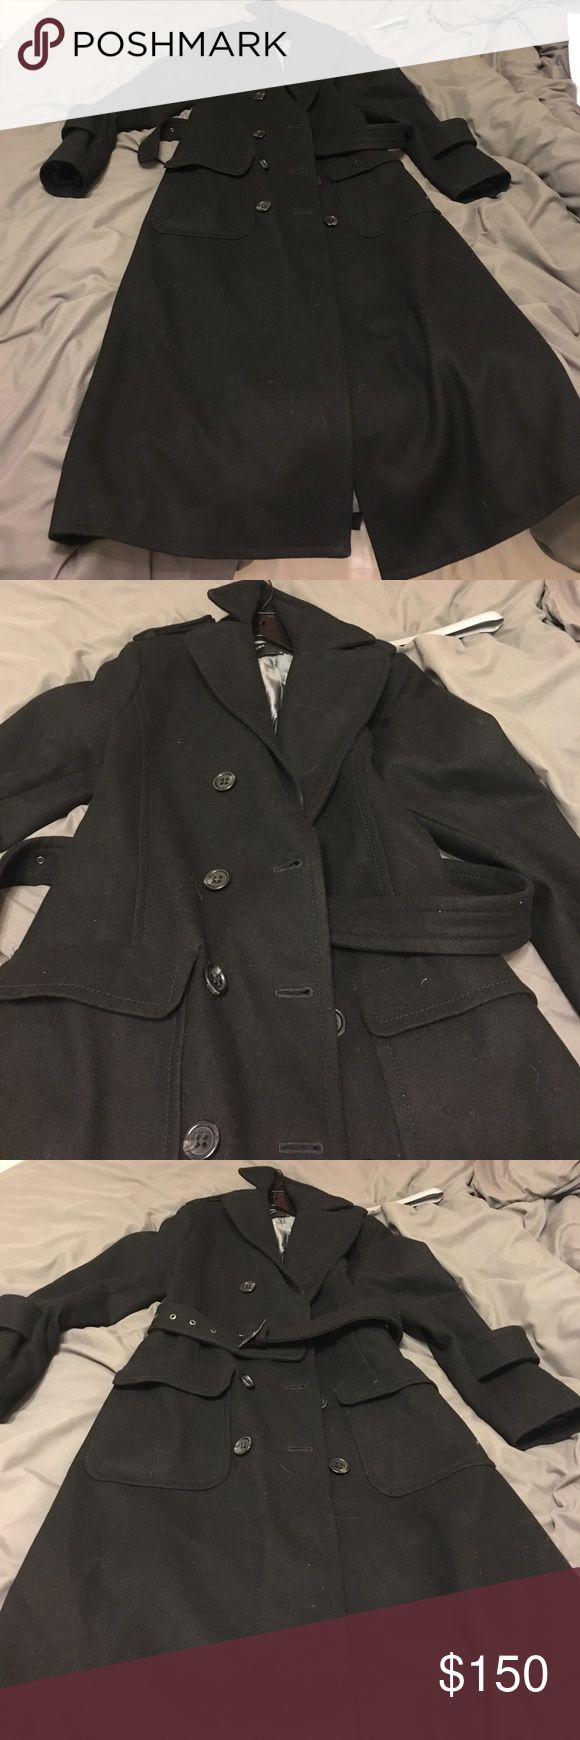 Bcbg MaxAzria trench Worn once black trench coat...there is a minor stain on the inside lining...65% wool/25% rayon/10% acrylic BCBGMaxAzria Jackets & Coats Trench Coats